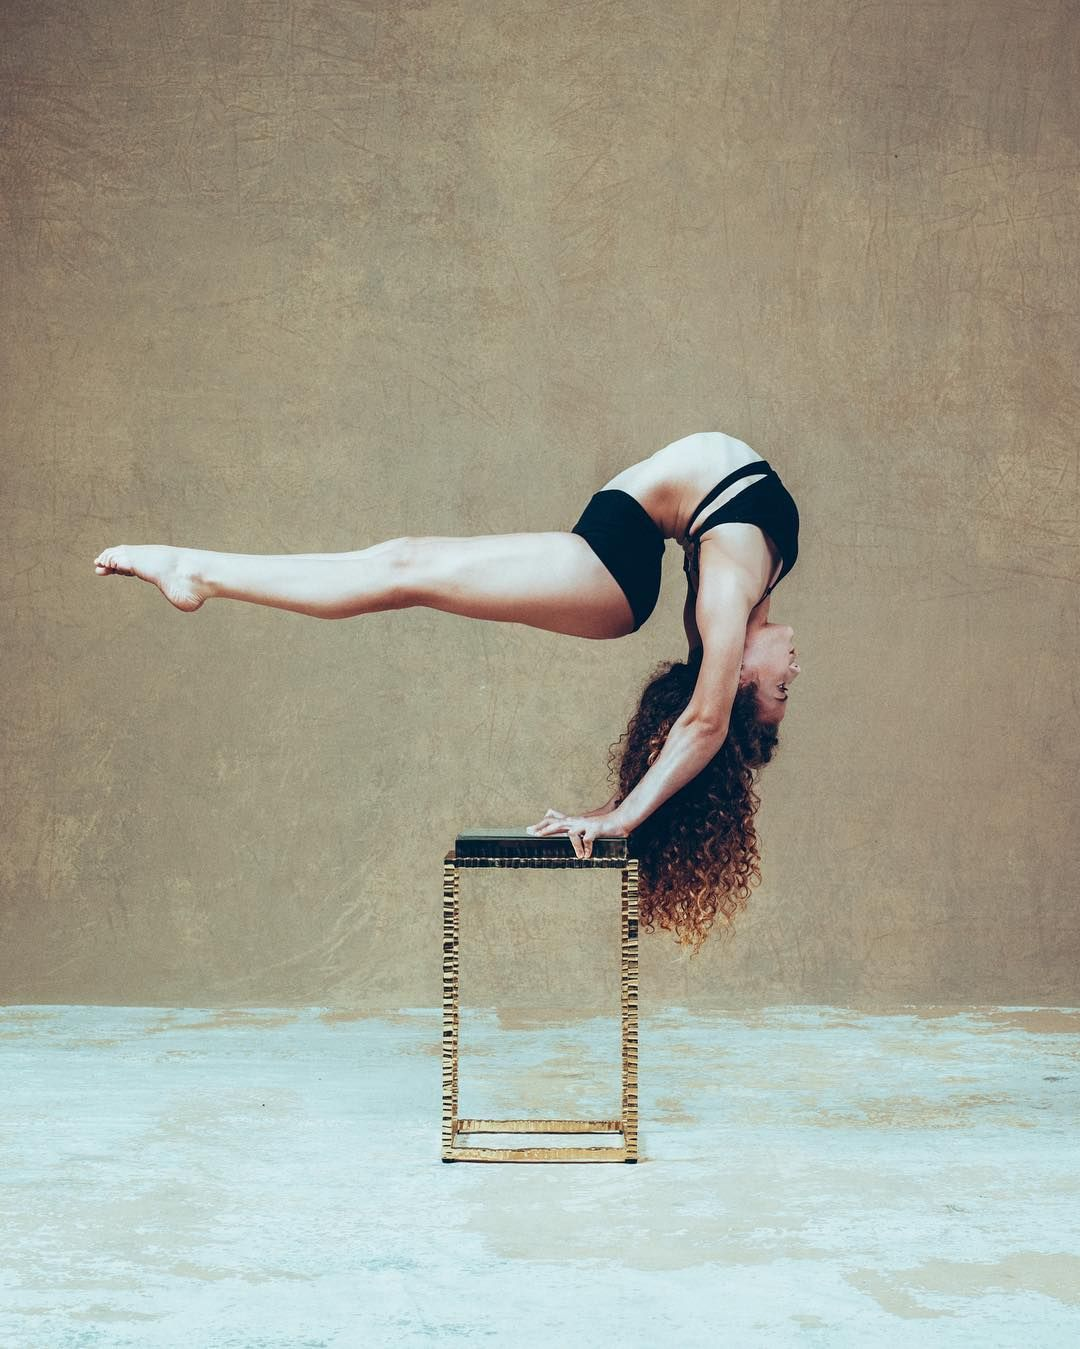 When You Change The Way You Look At Things The Things You Look At Change Sebastienmicke Gymnastics Poses Gymnastics Photography Amazing Gymnastics